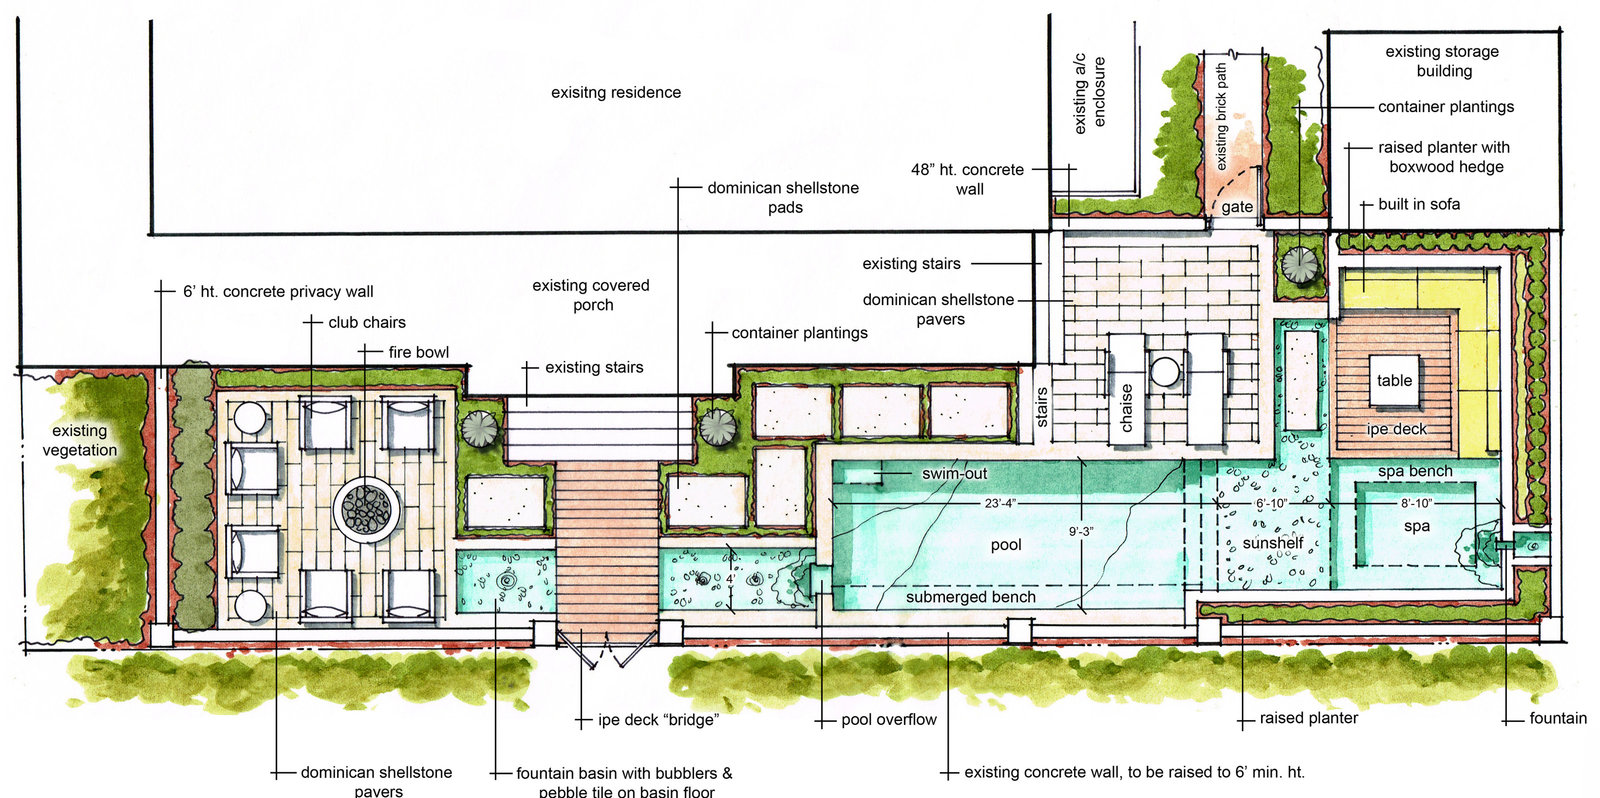 Parks Residence - Schematic Design